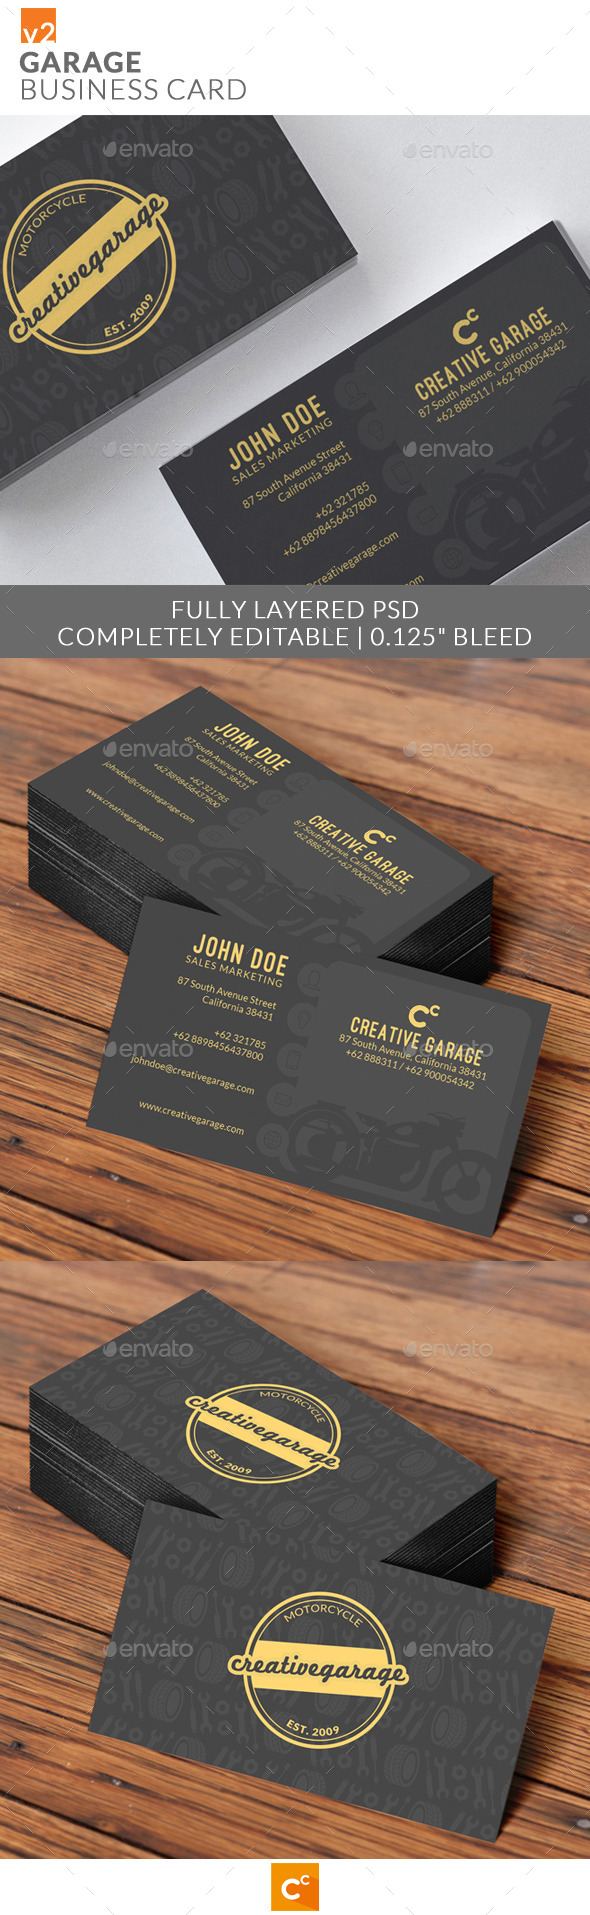 Garage Business Cards v2 - Industry Specific Business Cards